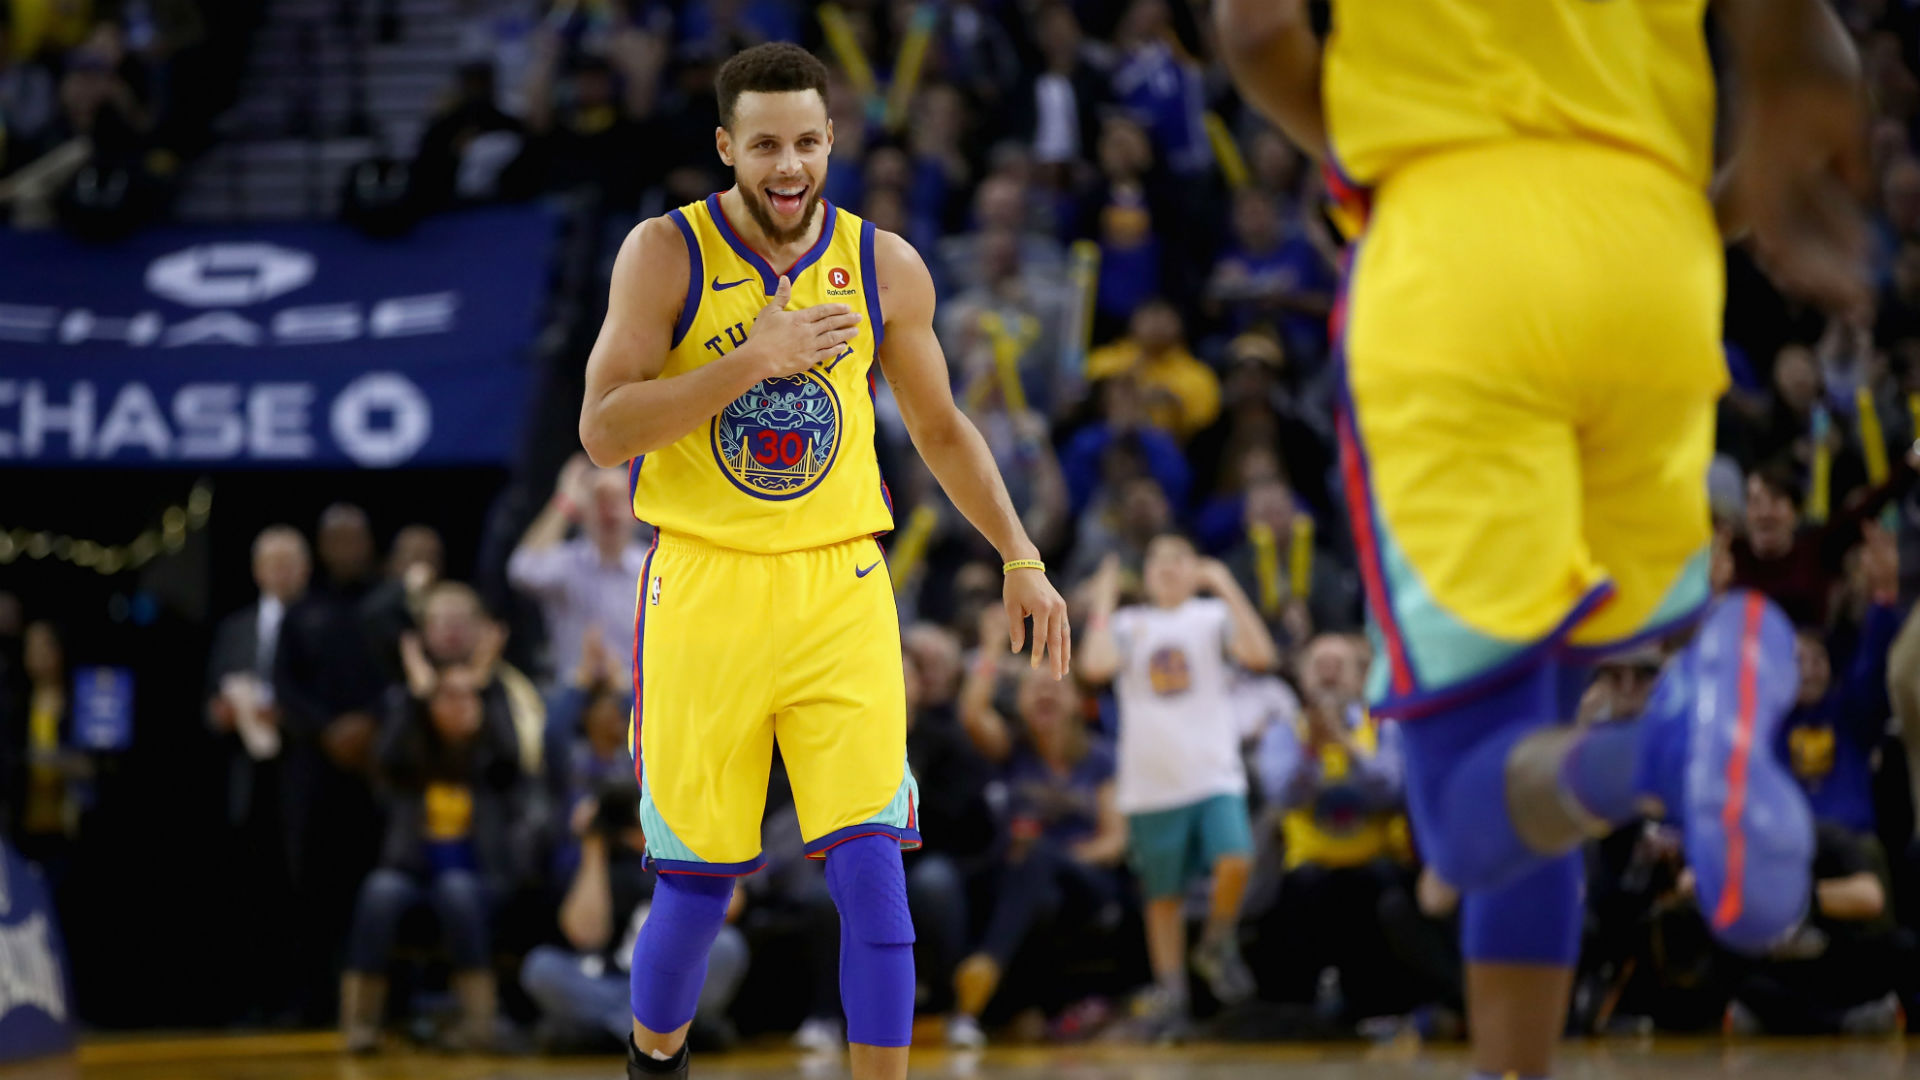 Steve Kerr expects the Warriors to bounce back against the Spurs